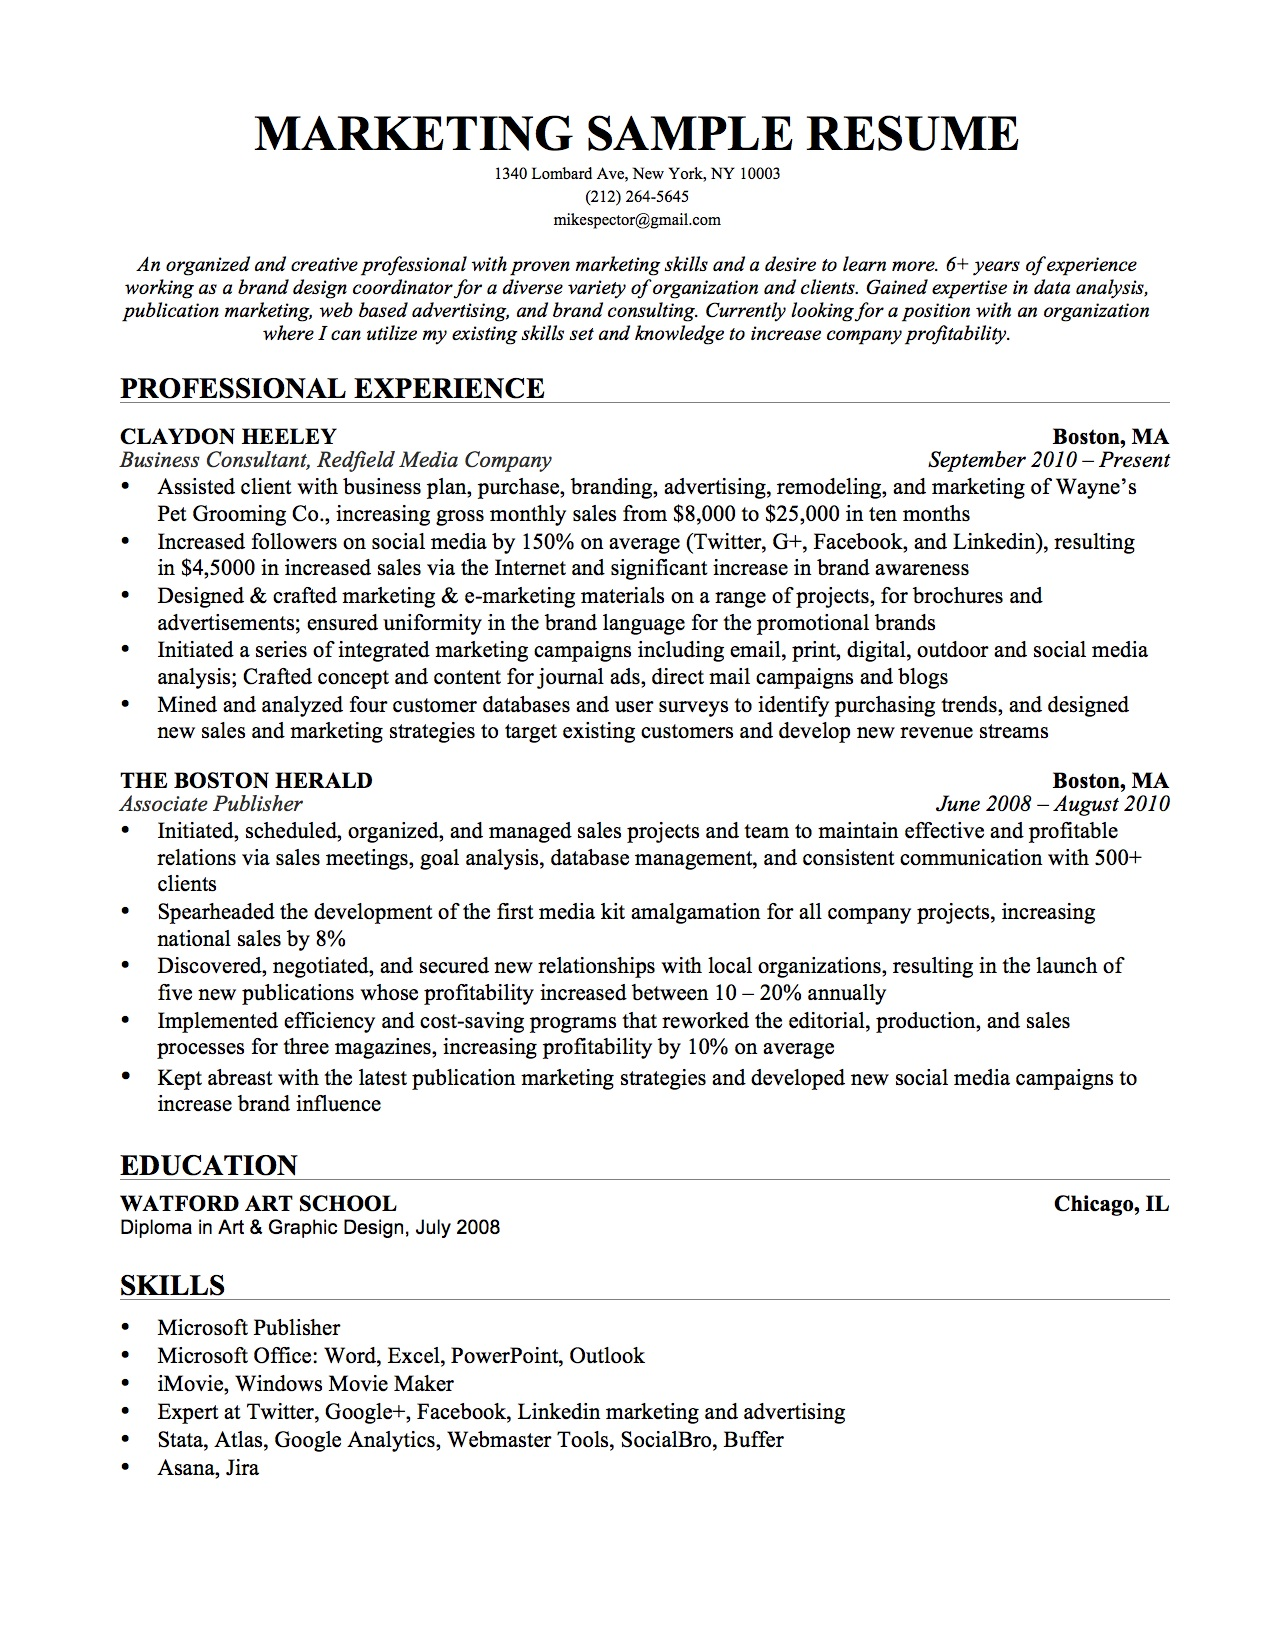 sales and marketing sample resume example resume sales marketing and job wining manager exampleg - Marketing Director Resume Examples